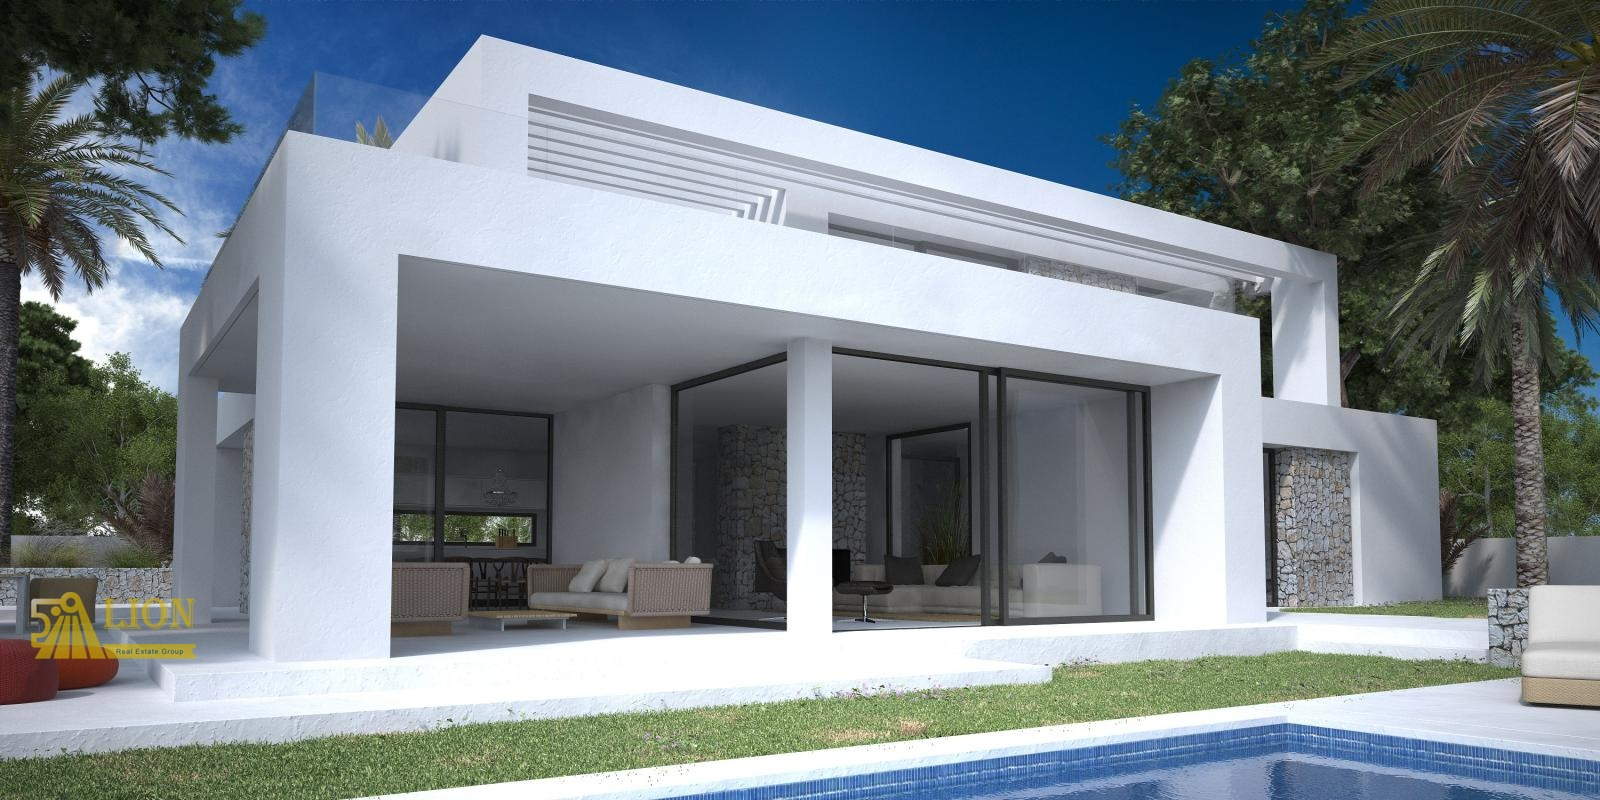 New constuction modern design villa decorated with beautiful stone elements price 420000€